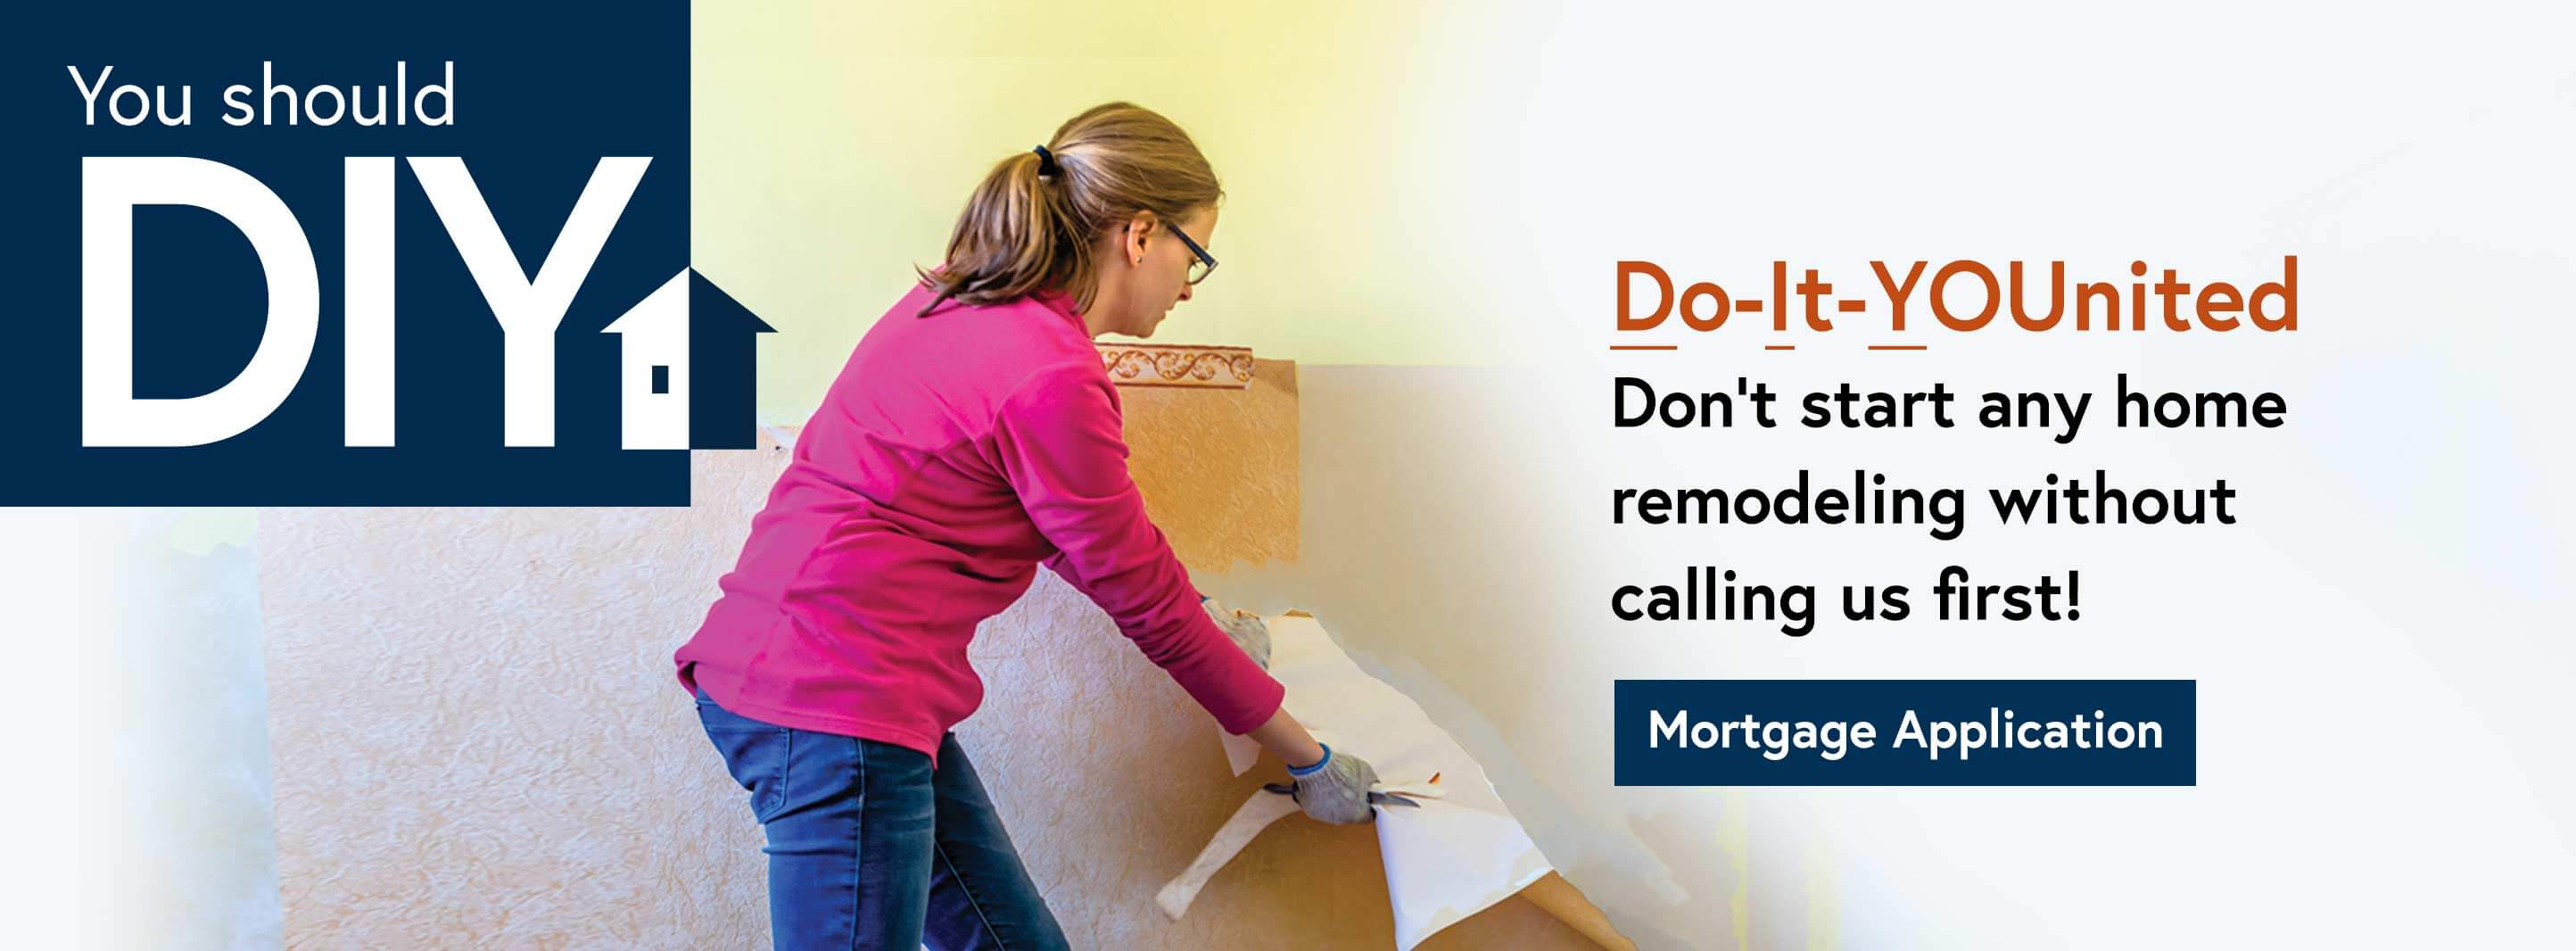 You Should DIY. Do It You-nited. Don't start any home remodeling without calling us first. Mortgage Application.